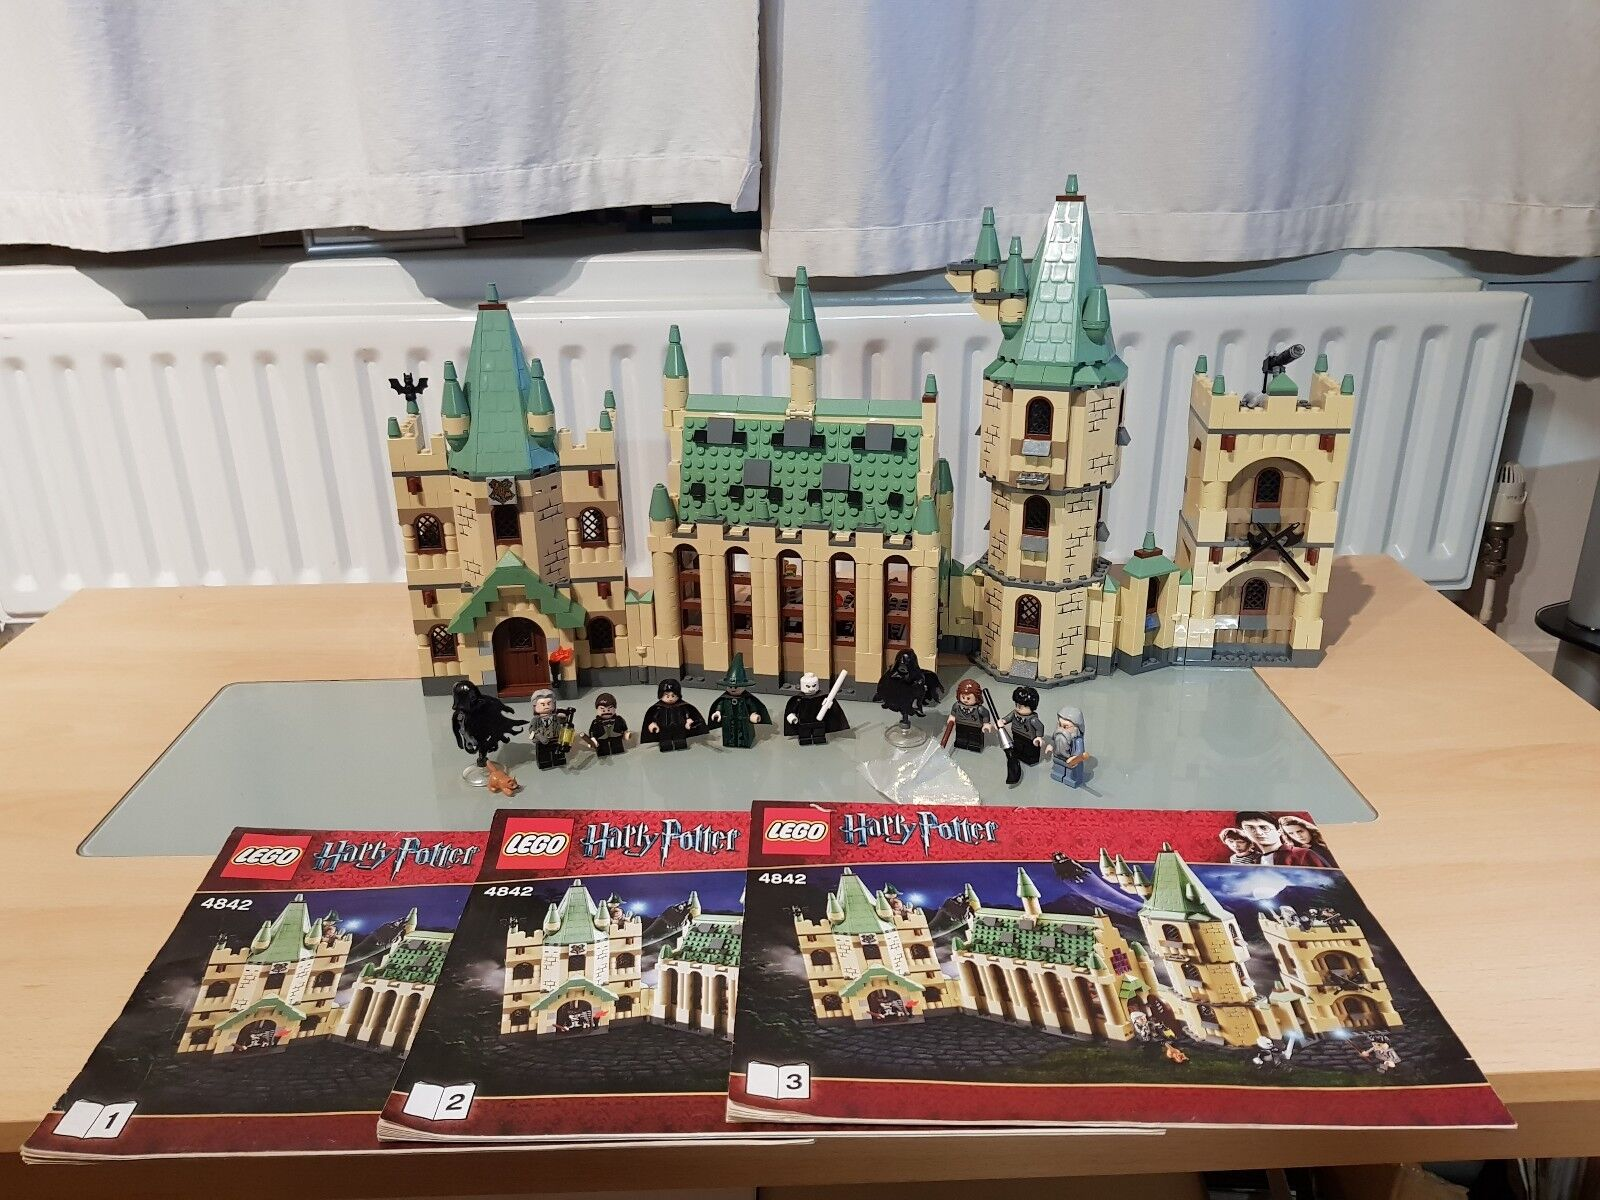 LEGO HARRY POTTER HOGWARTS CASTLE 4842 100% COMPLETE WITH INSTRUCTIONS